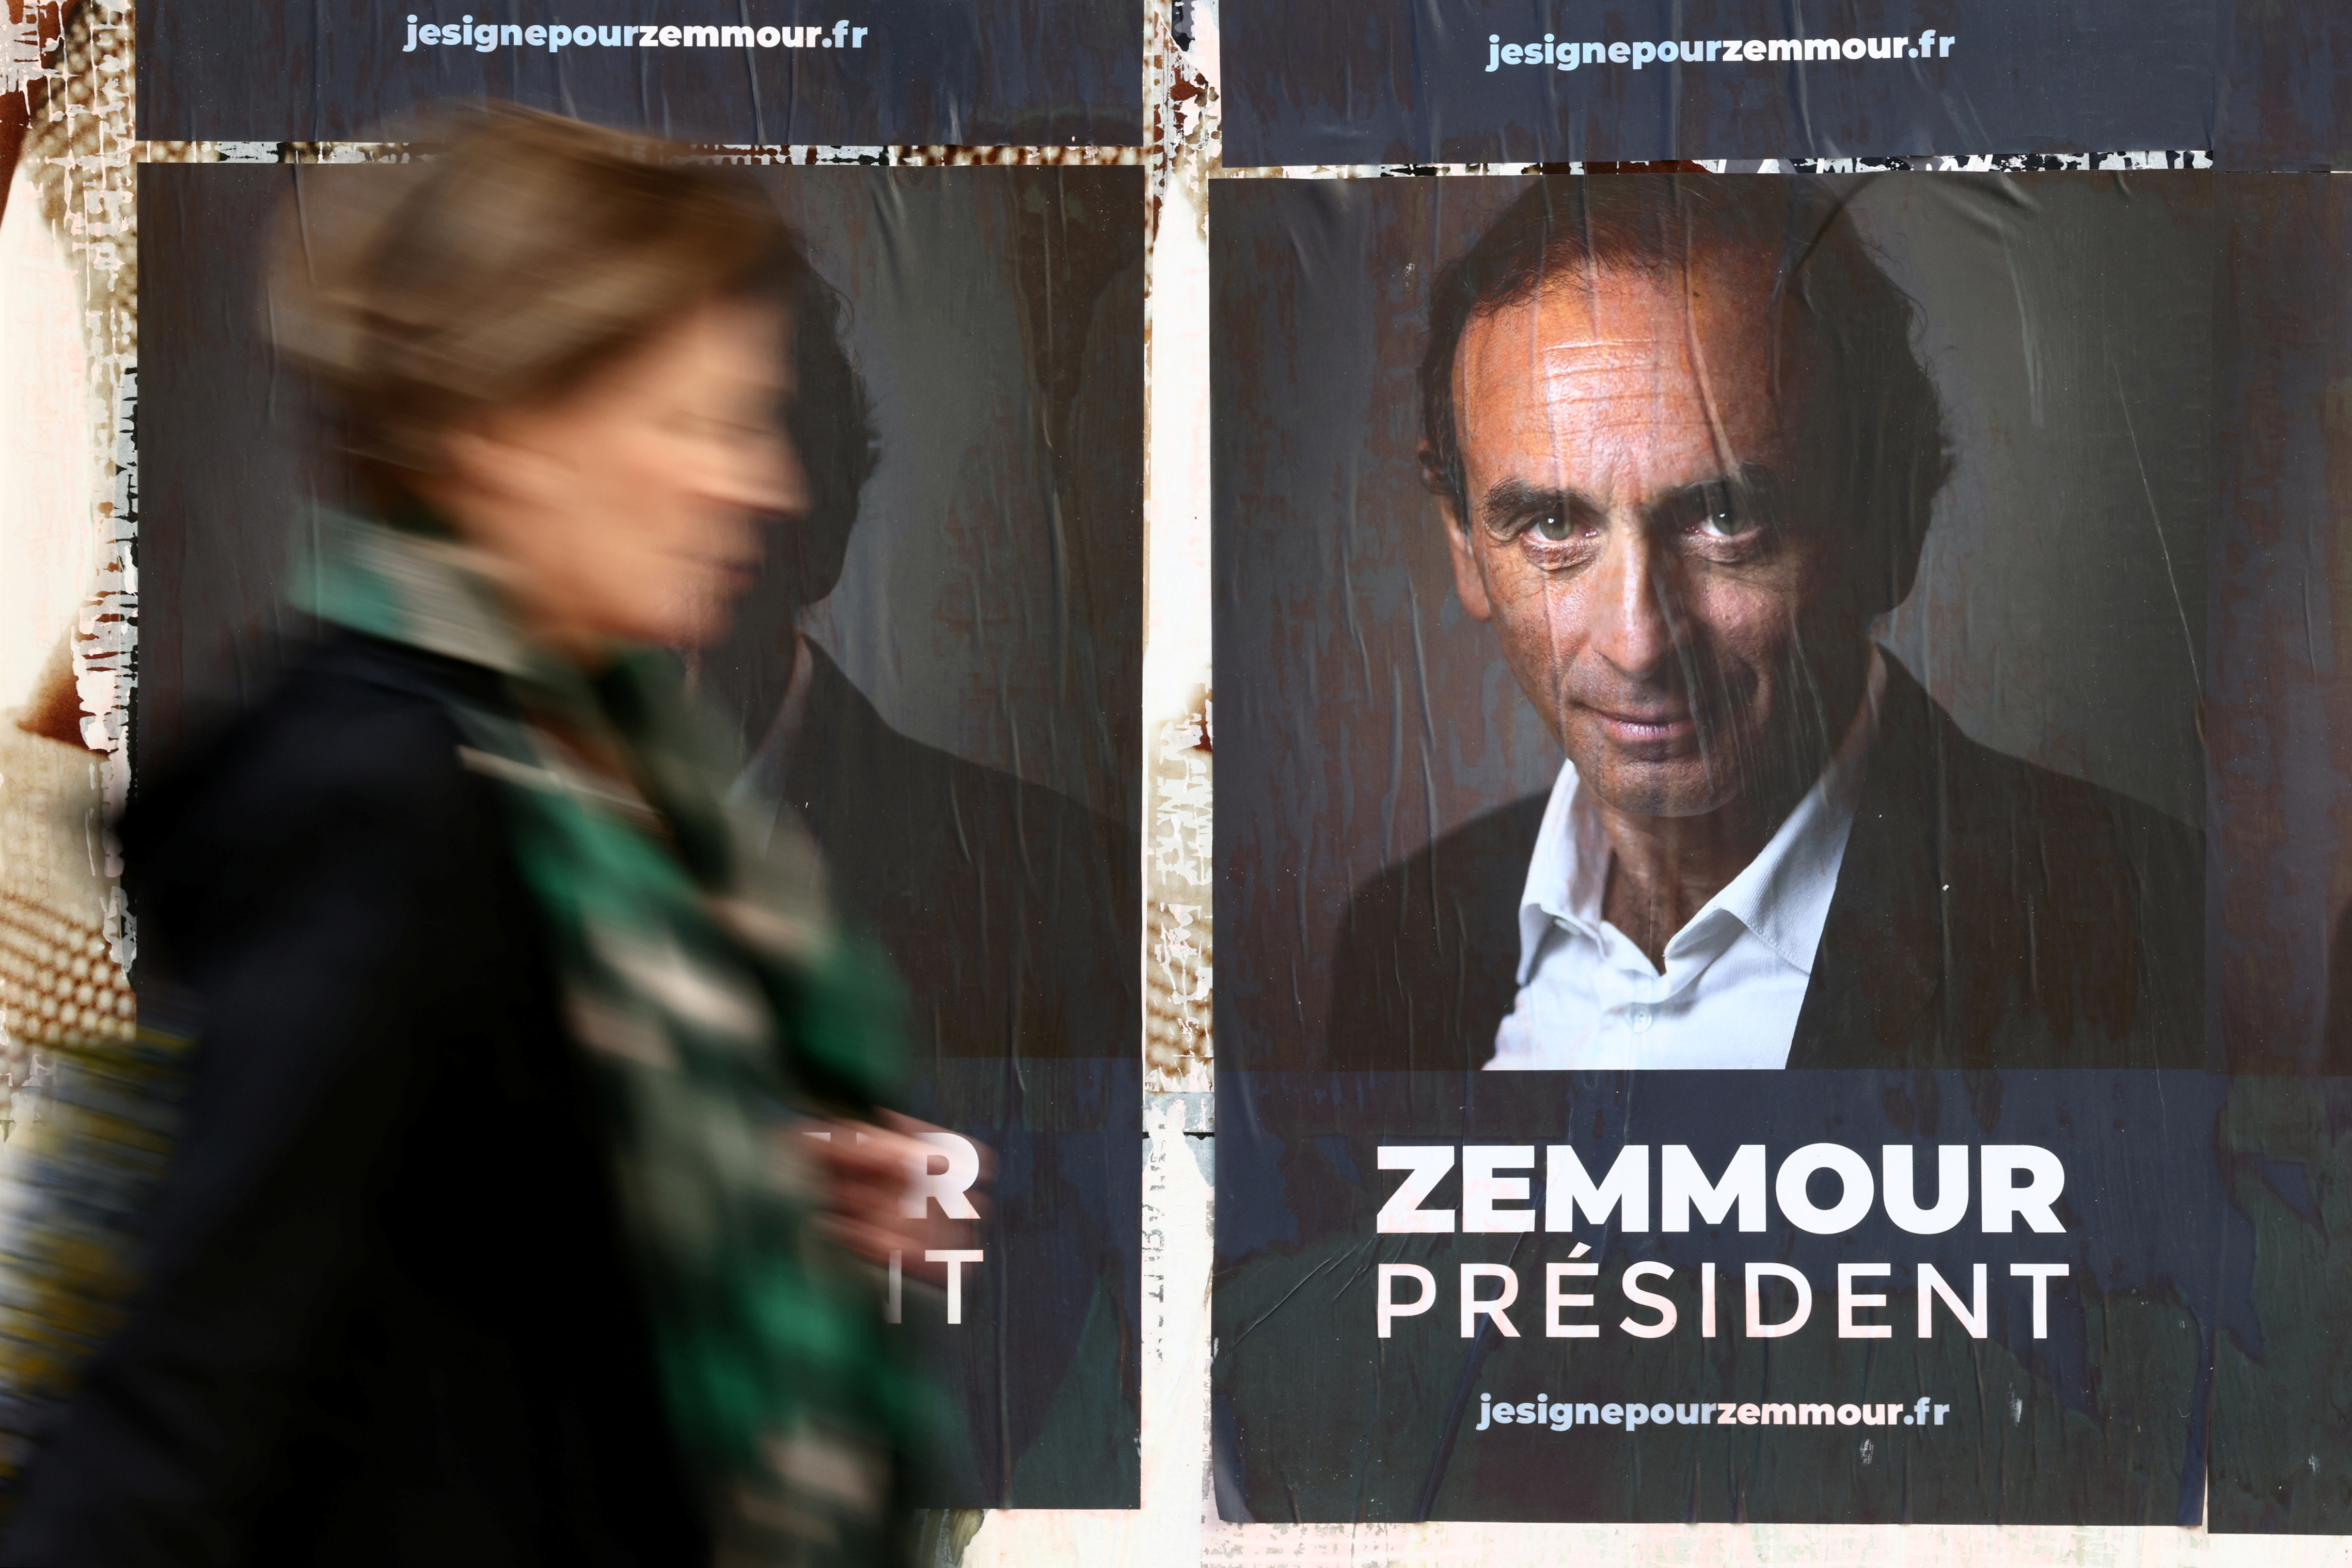 A woman walks past posters in support of French far-right commentator Eric Zemmour, probable candidate for the French presidential election next April, posted on a wall in Paris, France, October 13, 2021. The slogan reads